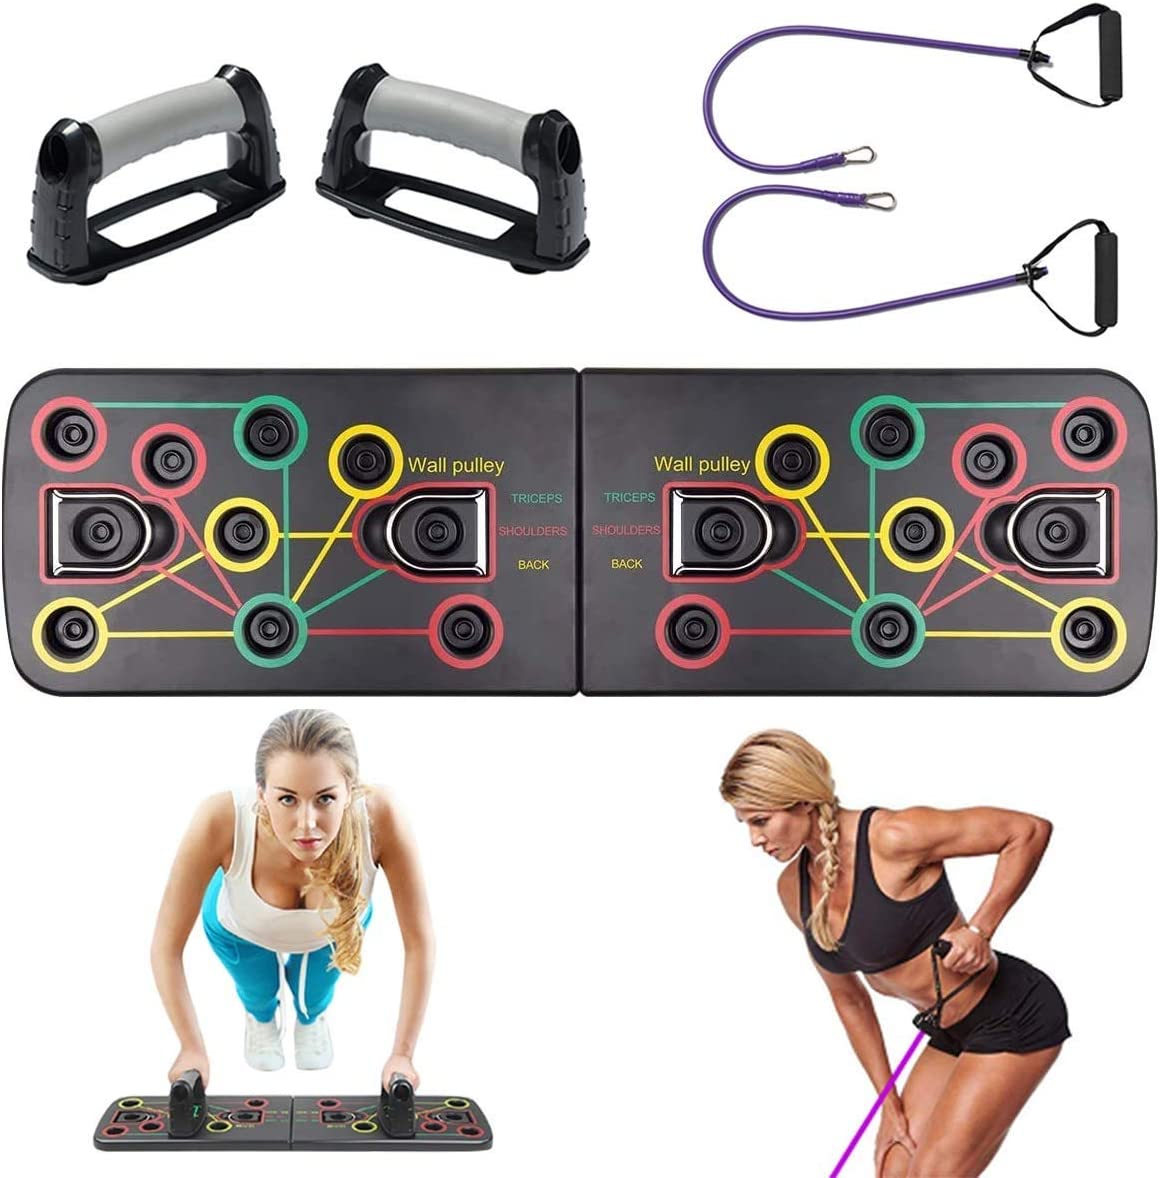 Minetom Push Up Board Push Up System Faltbares Push-Up-System Multifunktionales Push Up System Gym Grizzly Brett liegestuetz